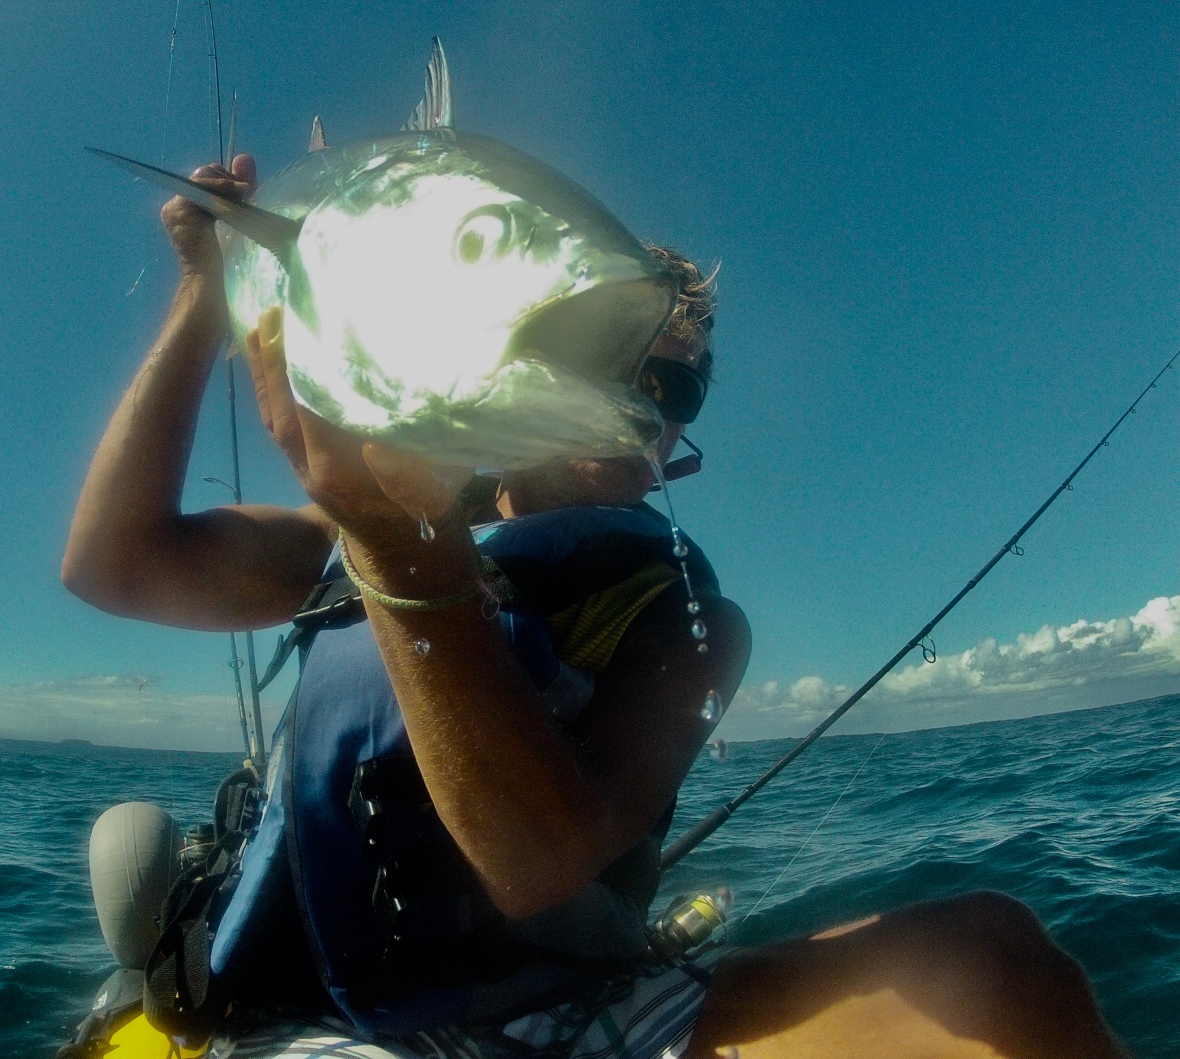 Another speedy Mack Tuna caught and released of the Coffs Coastline, New South Wales, Australia